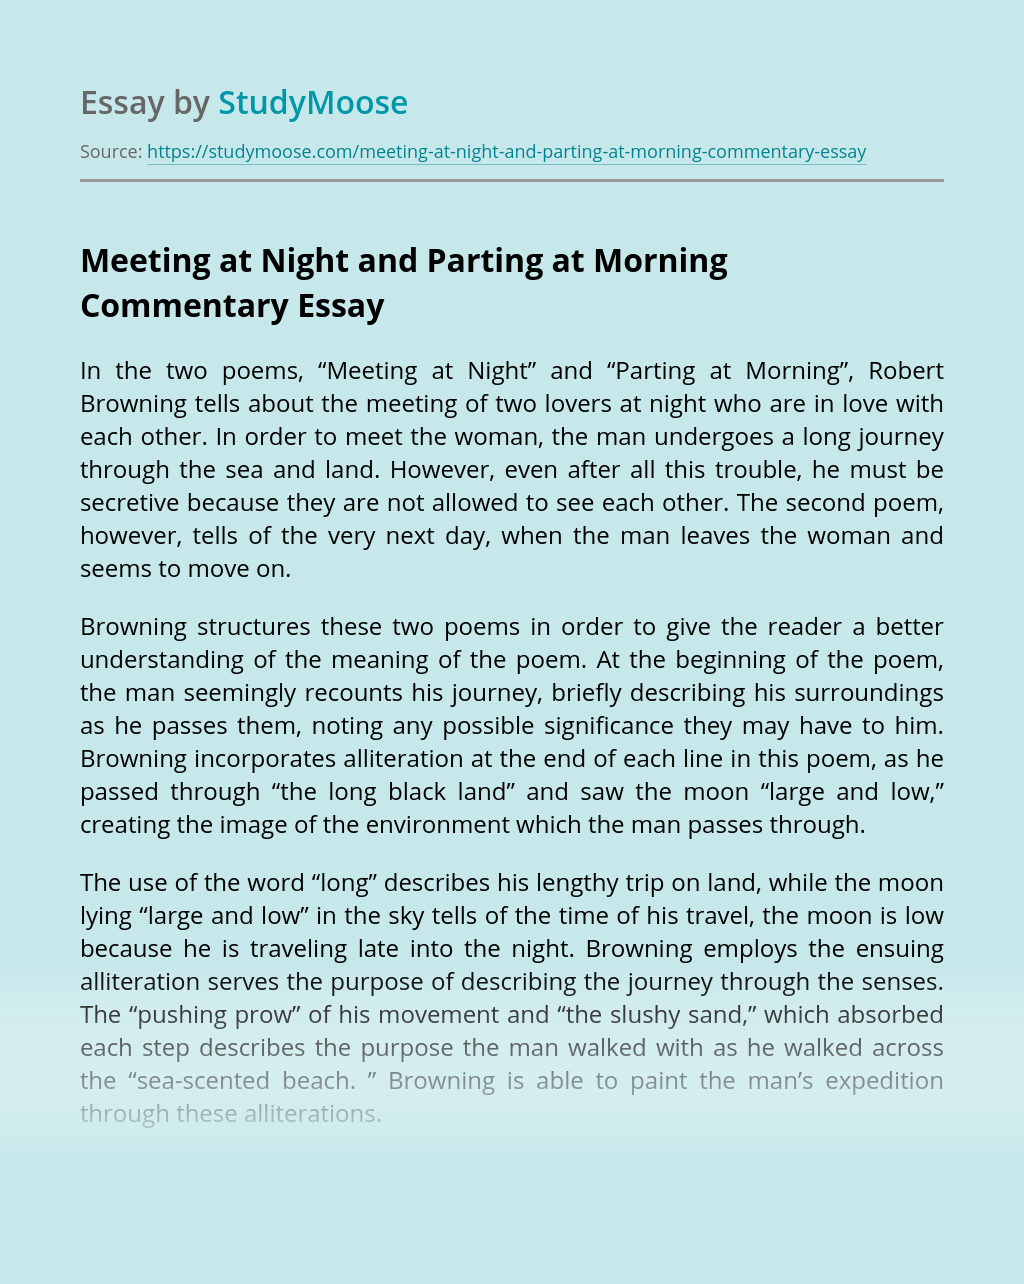 Meeting at Night and Parting at Morning Commentary